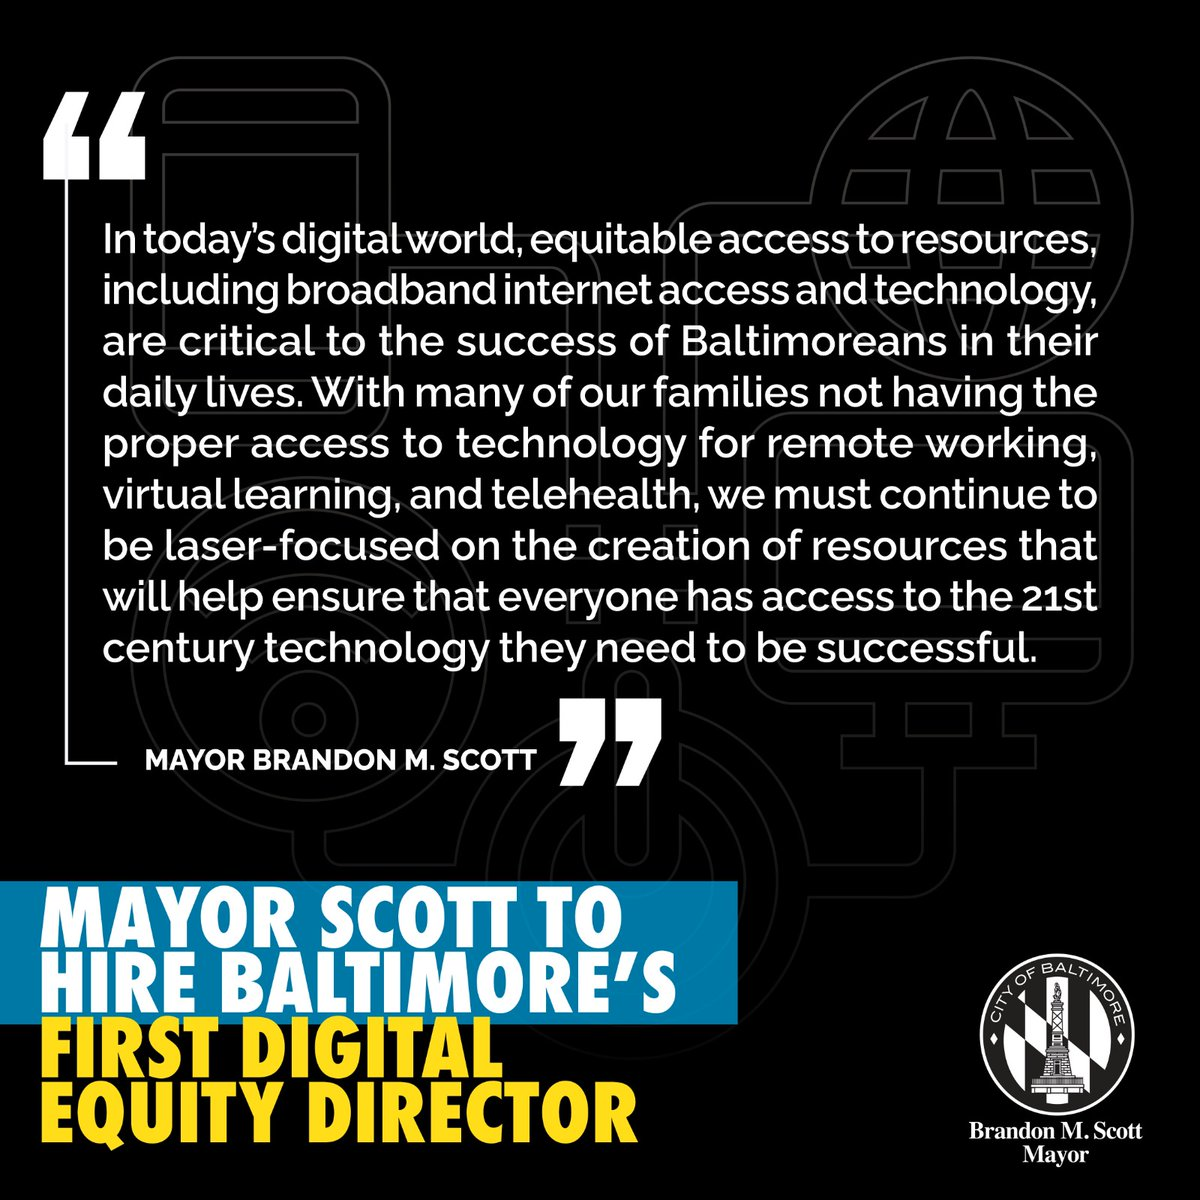 #BaltimoreCity is getting it's first #Director of Broadband and Digital #Equity! Check out @MayorBMScott's announcement! https://t.co/0pcxFa57ir